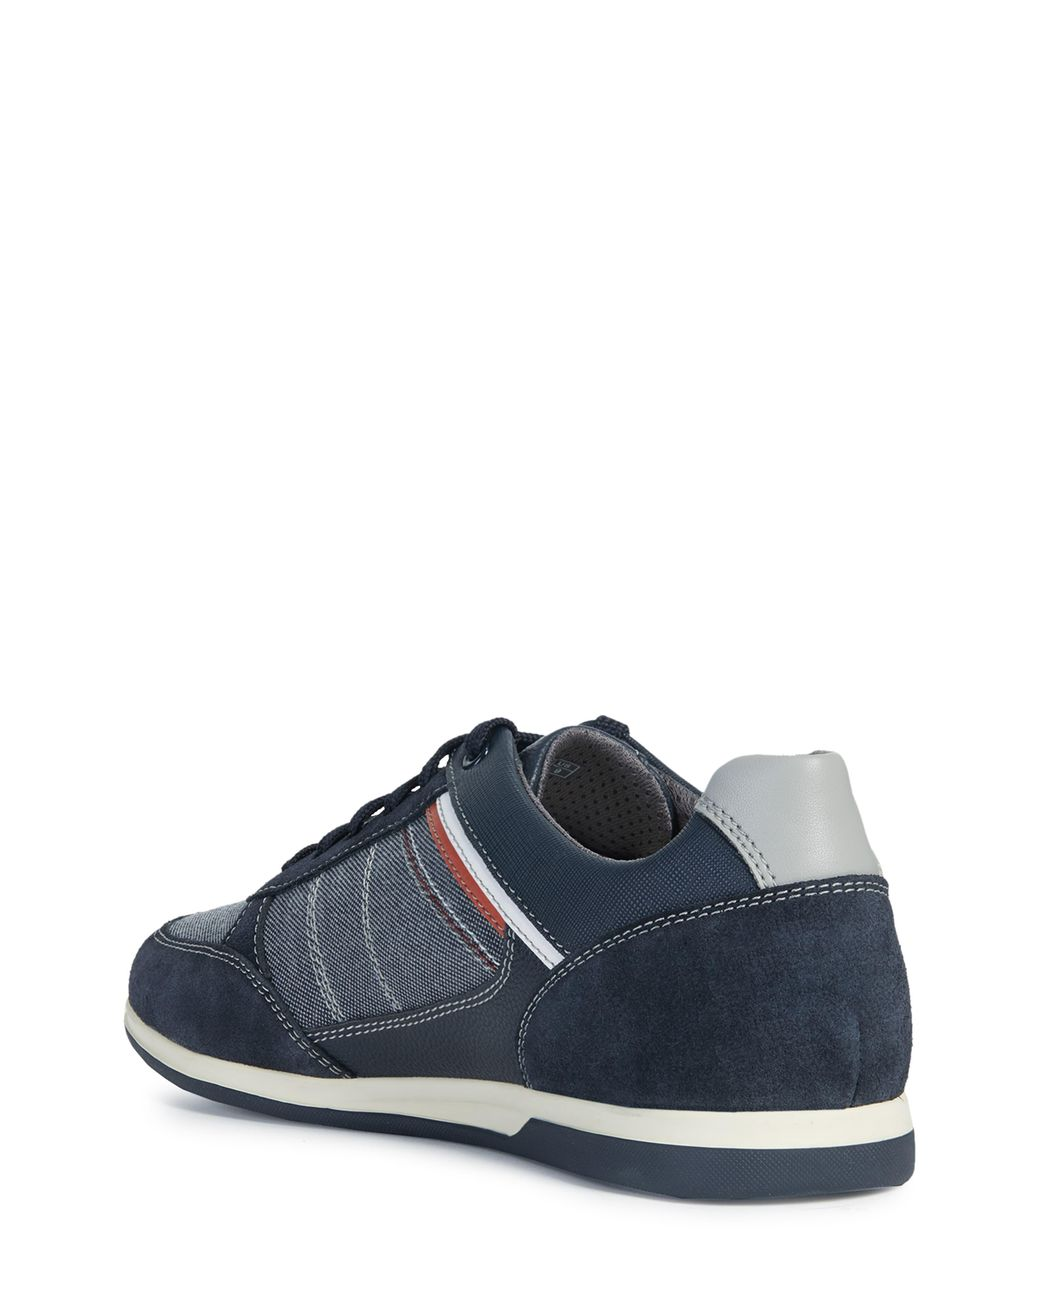 230cbc402bc Geox Renan Sneaker in Blue for Men - Save 59% - Lyst